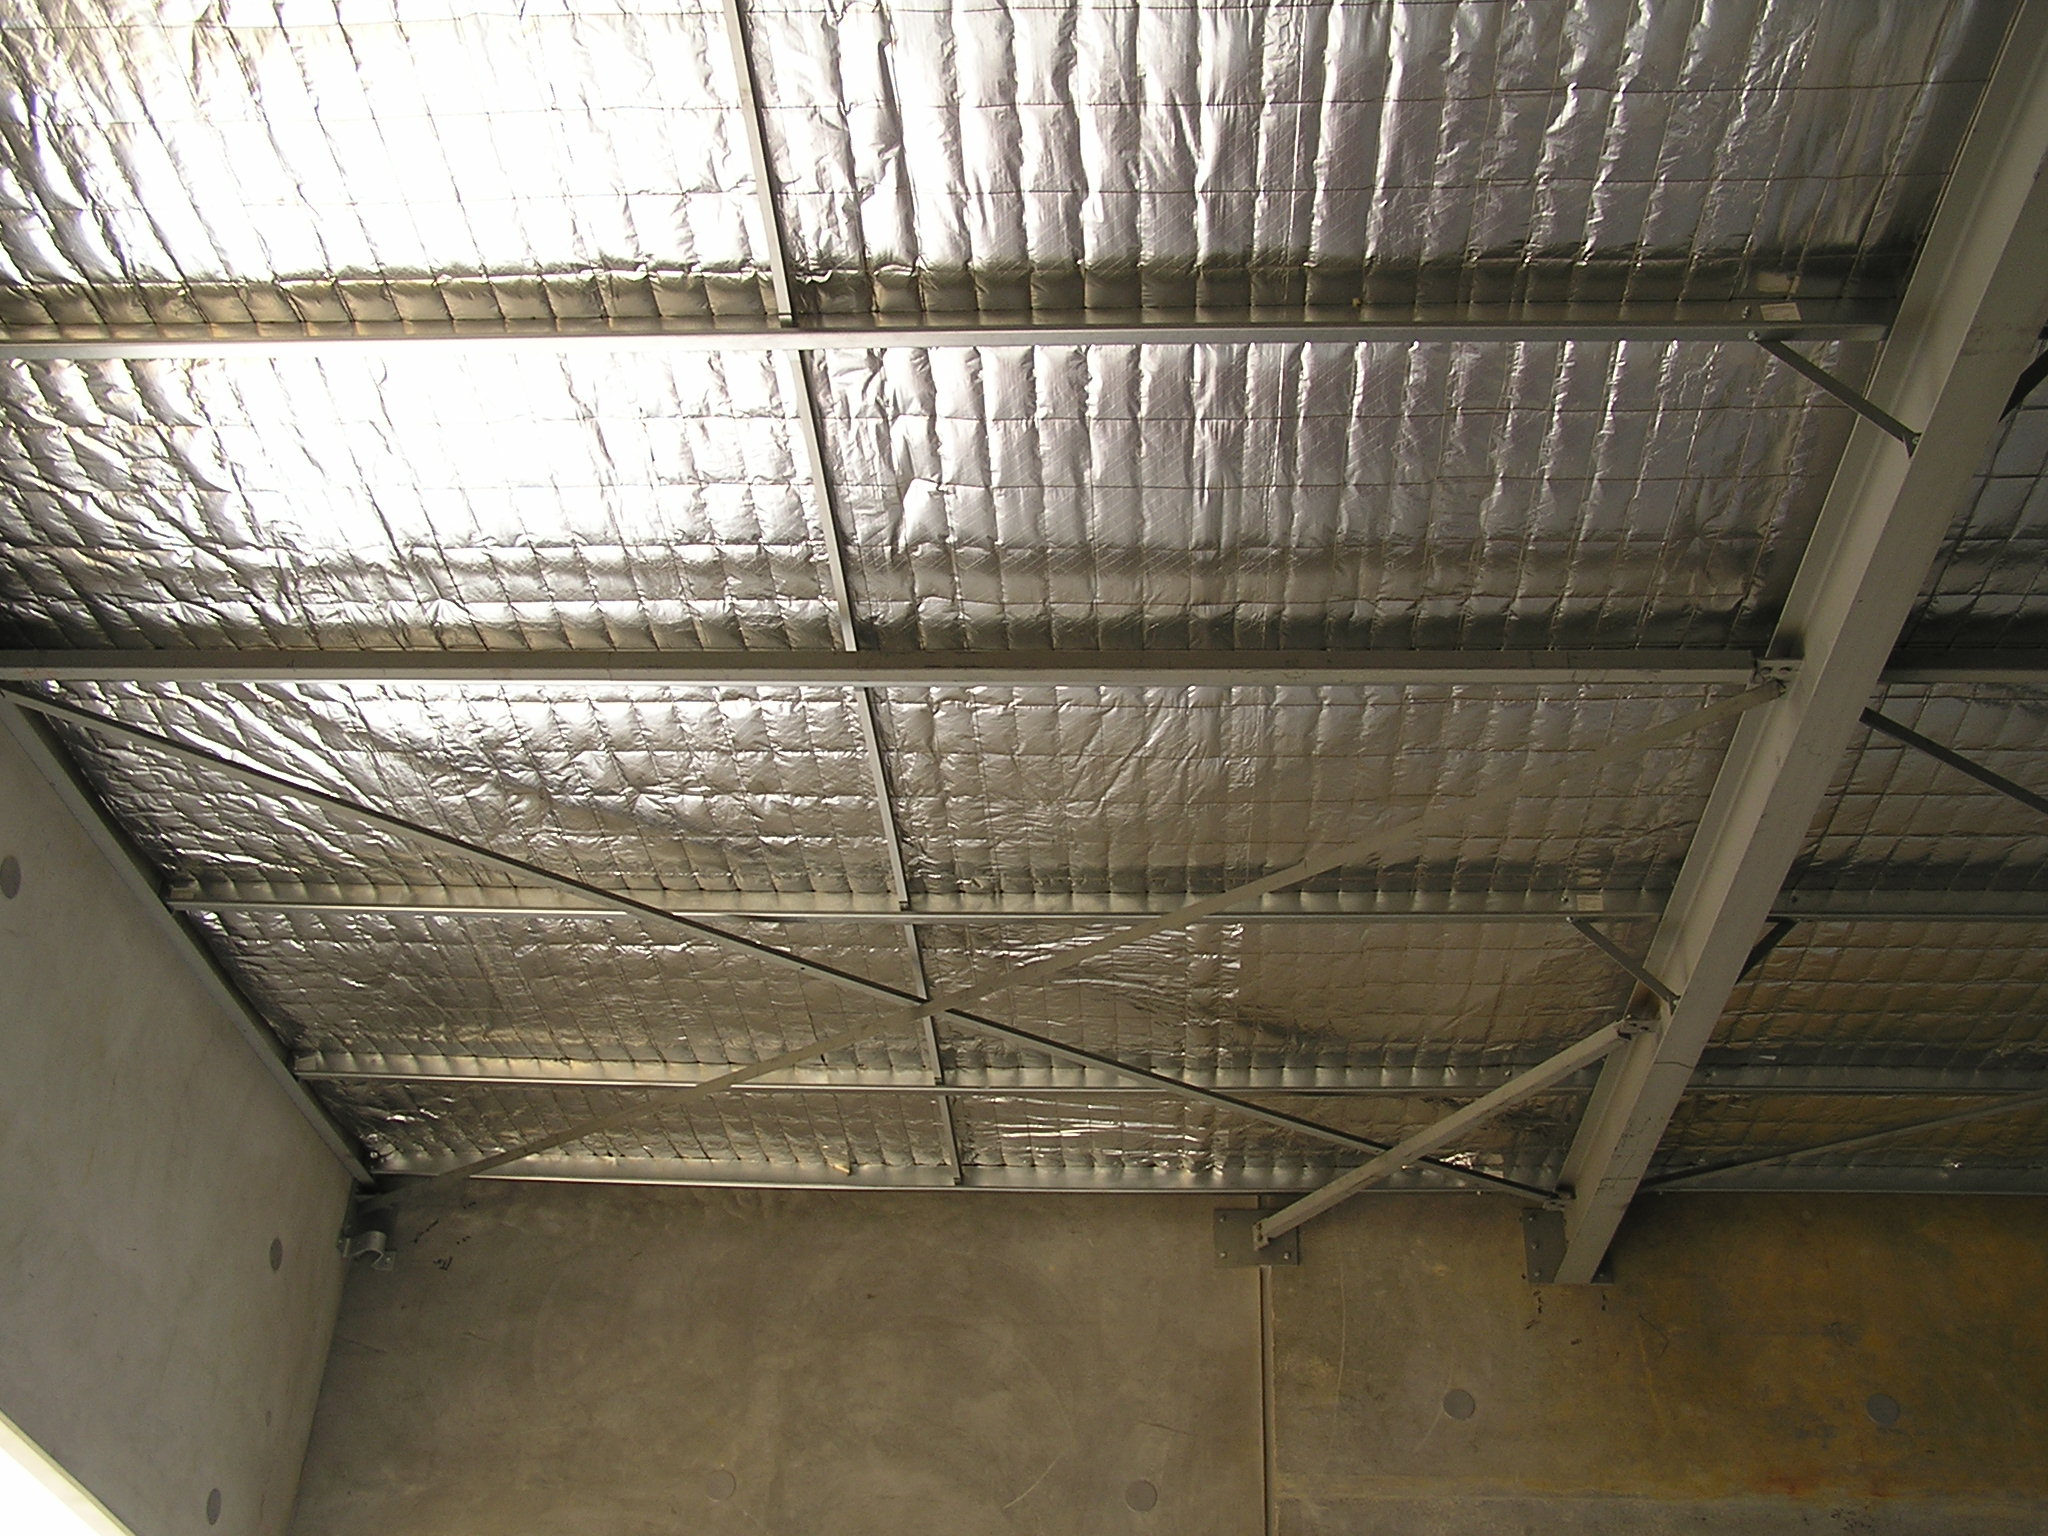 Warehouse roof structure